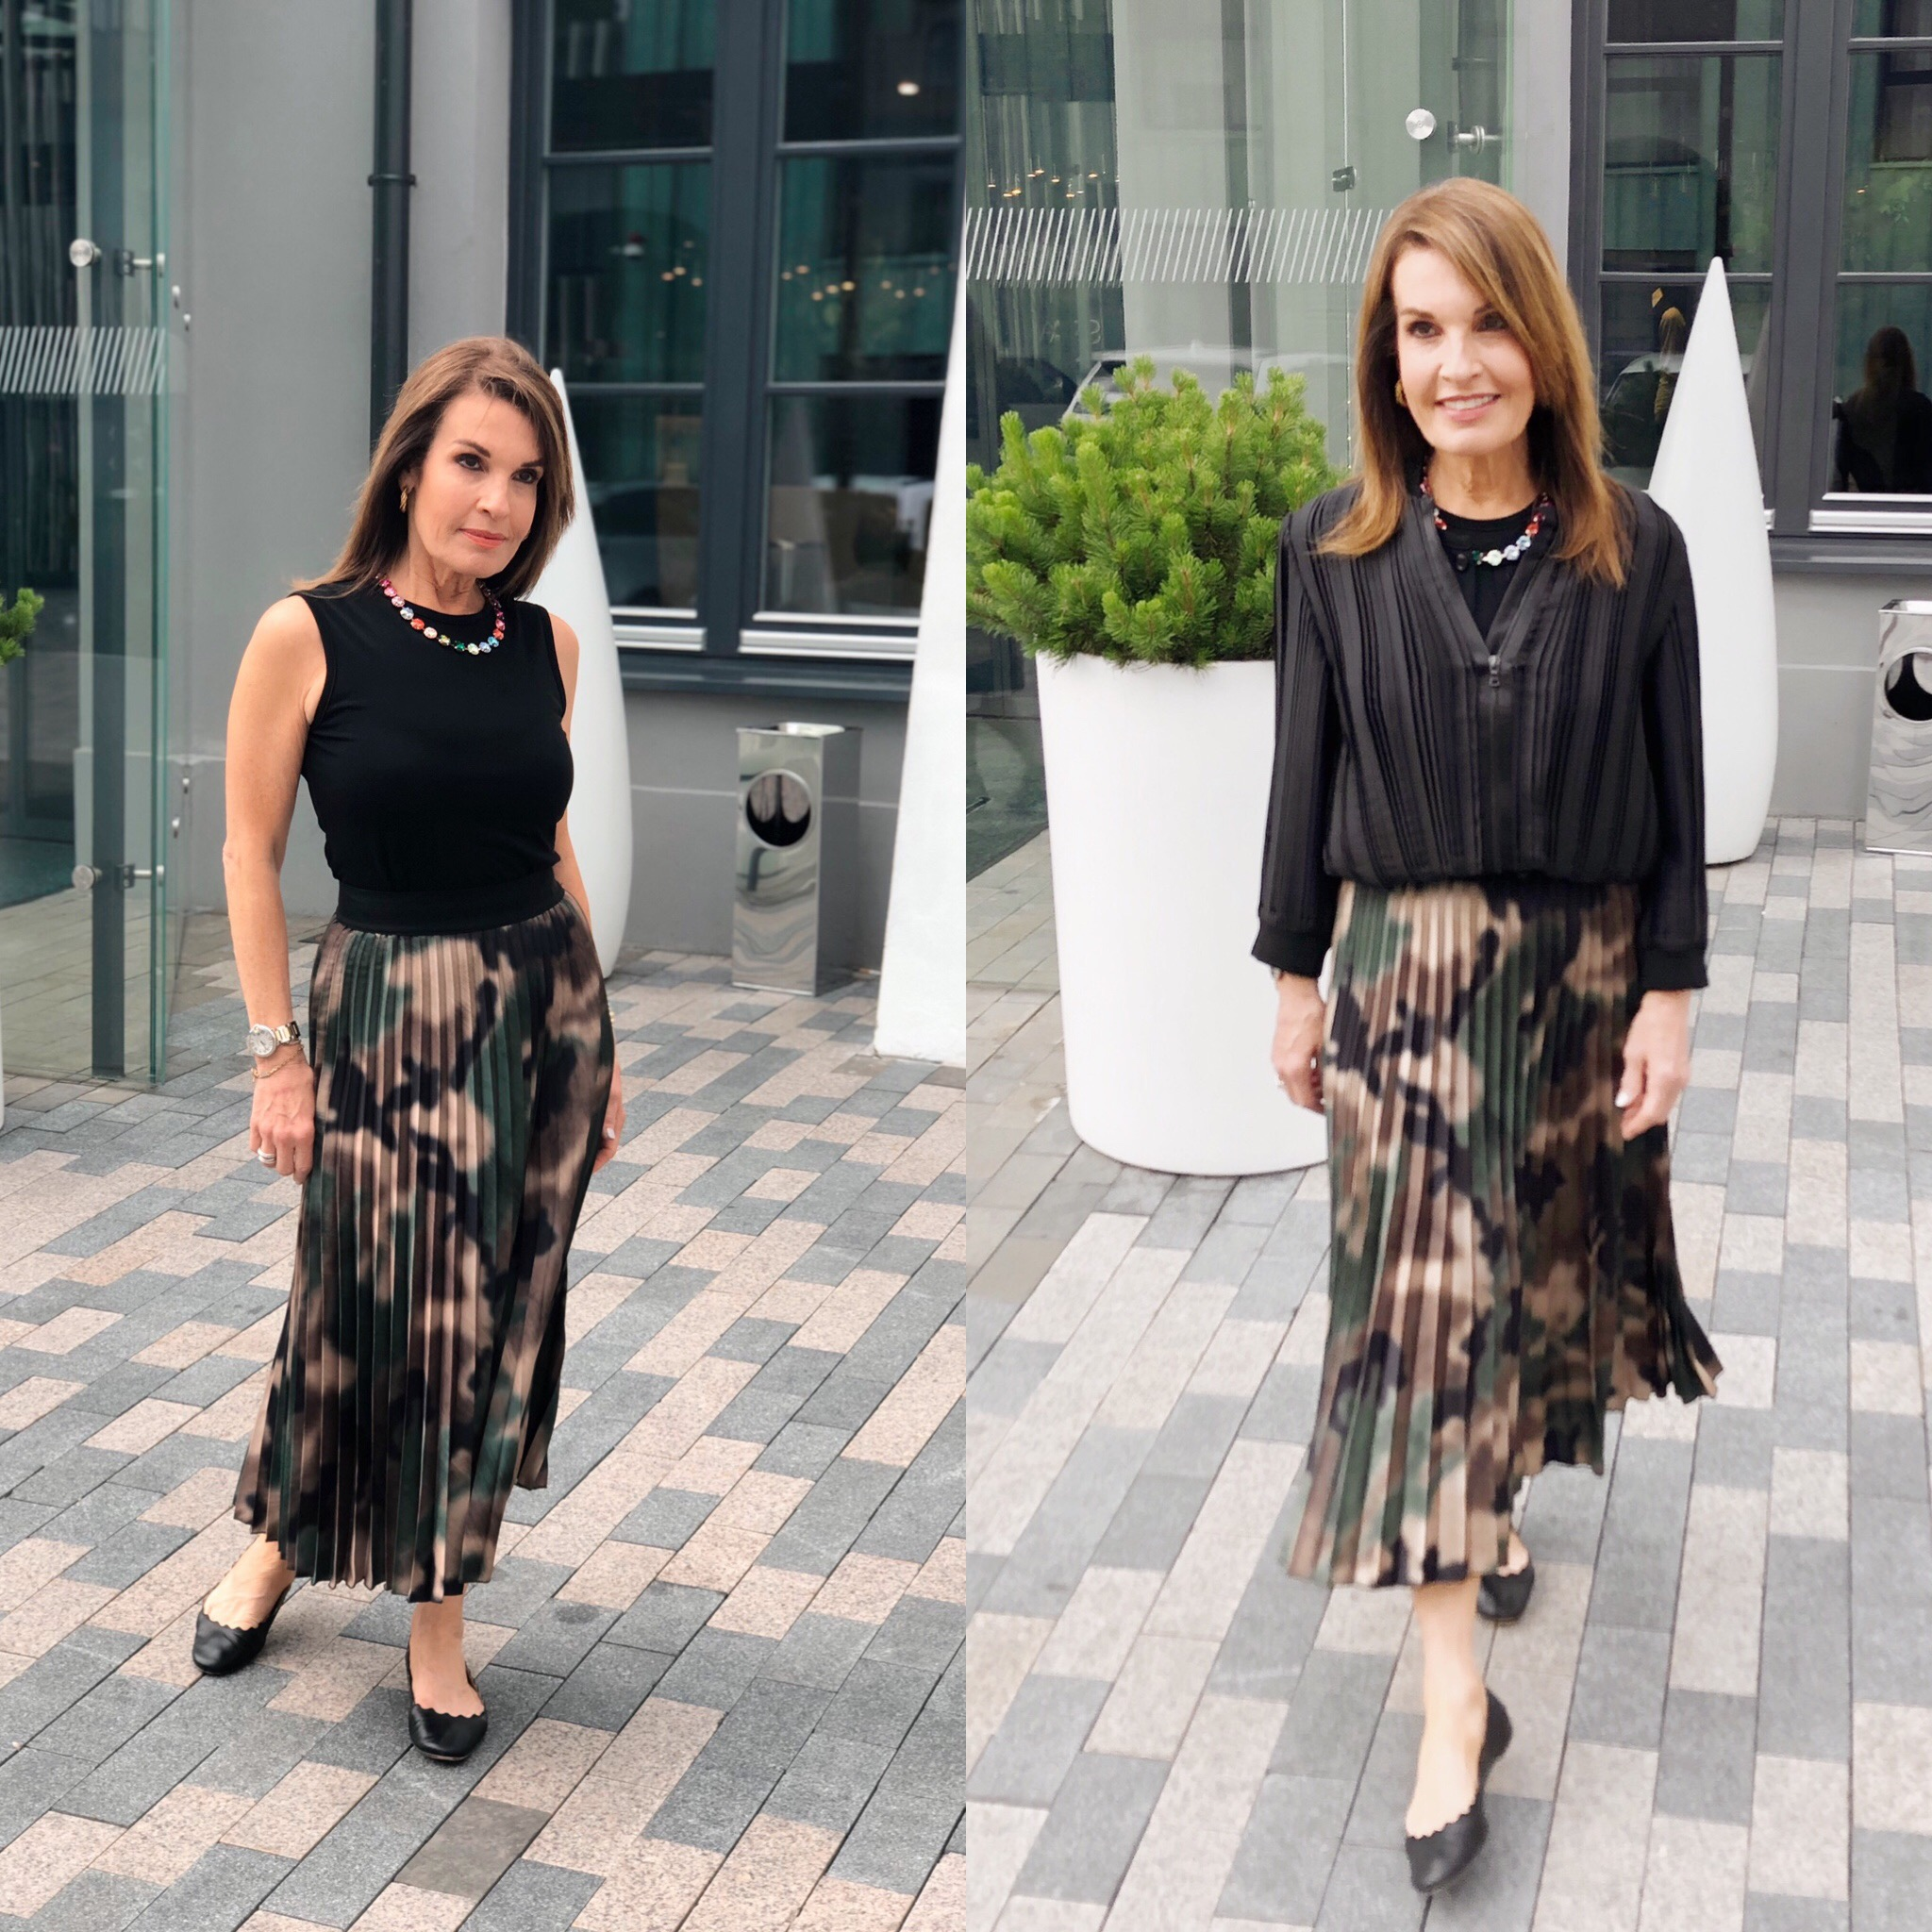 Another fabulous pleated skirt by    A World Curated,    Comrags top, Cathy Belzberg necklace, Victoria Beckham bomber jacket, Chloe flats( linked above)